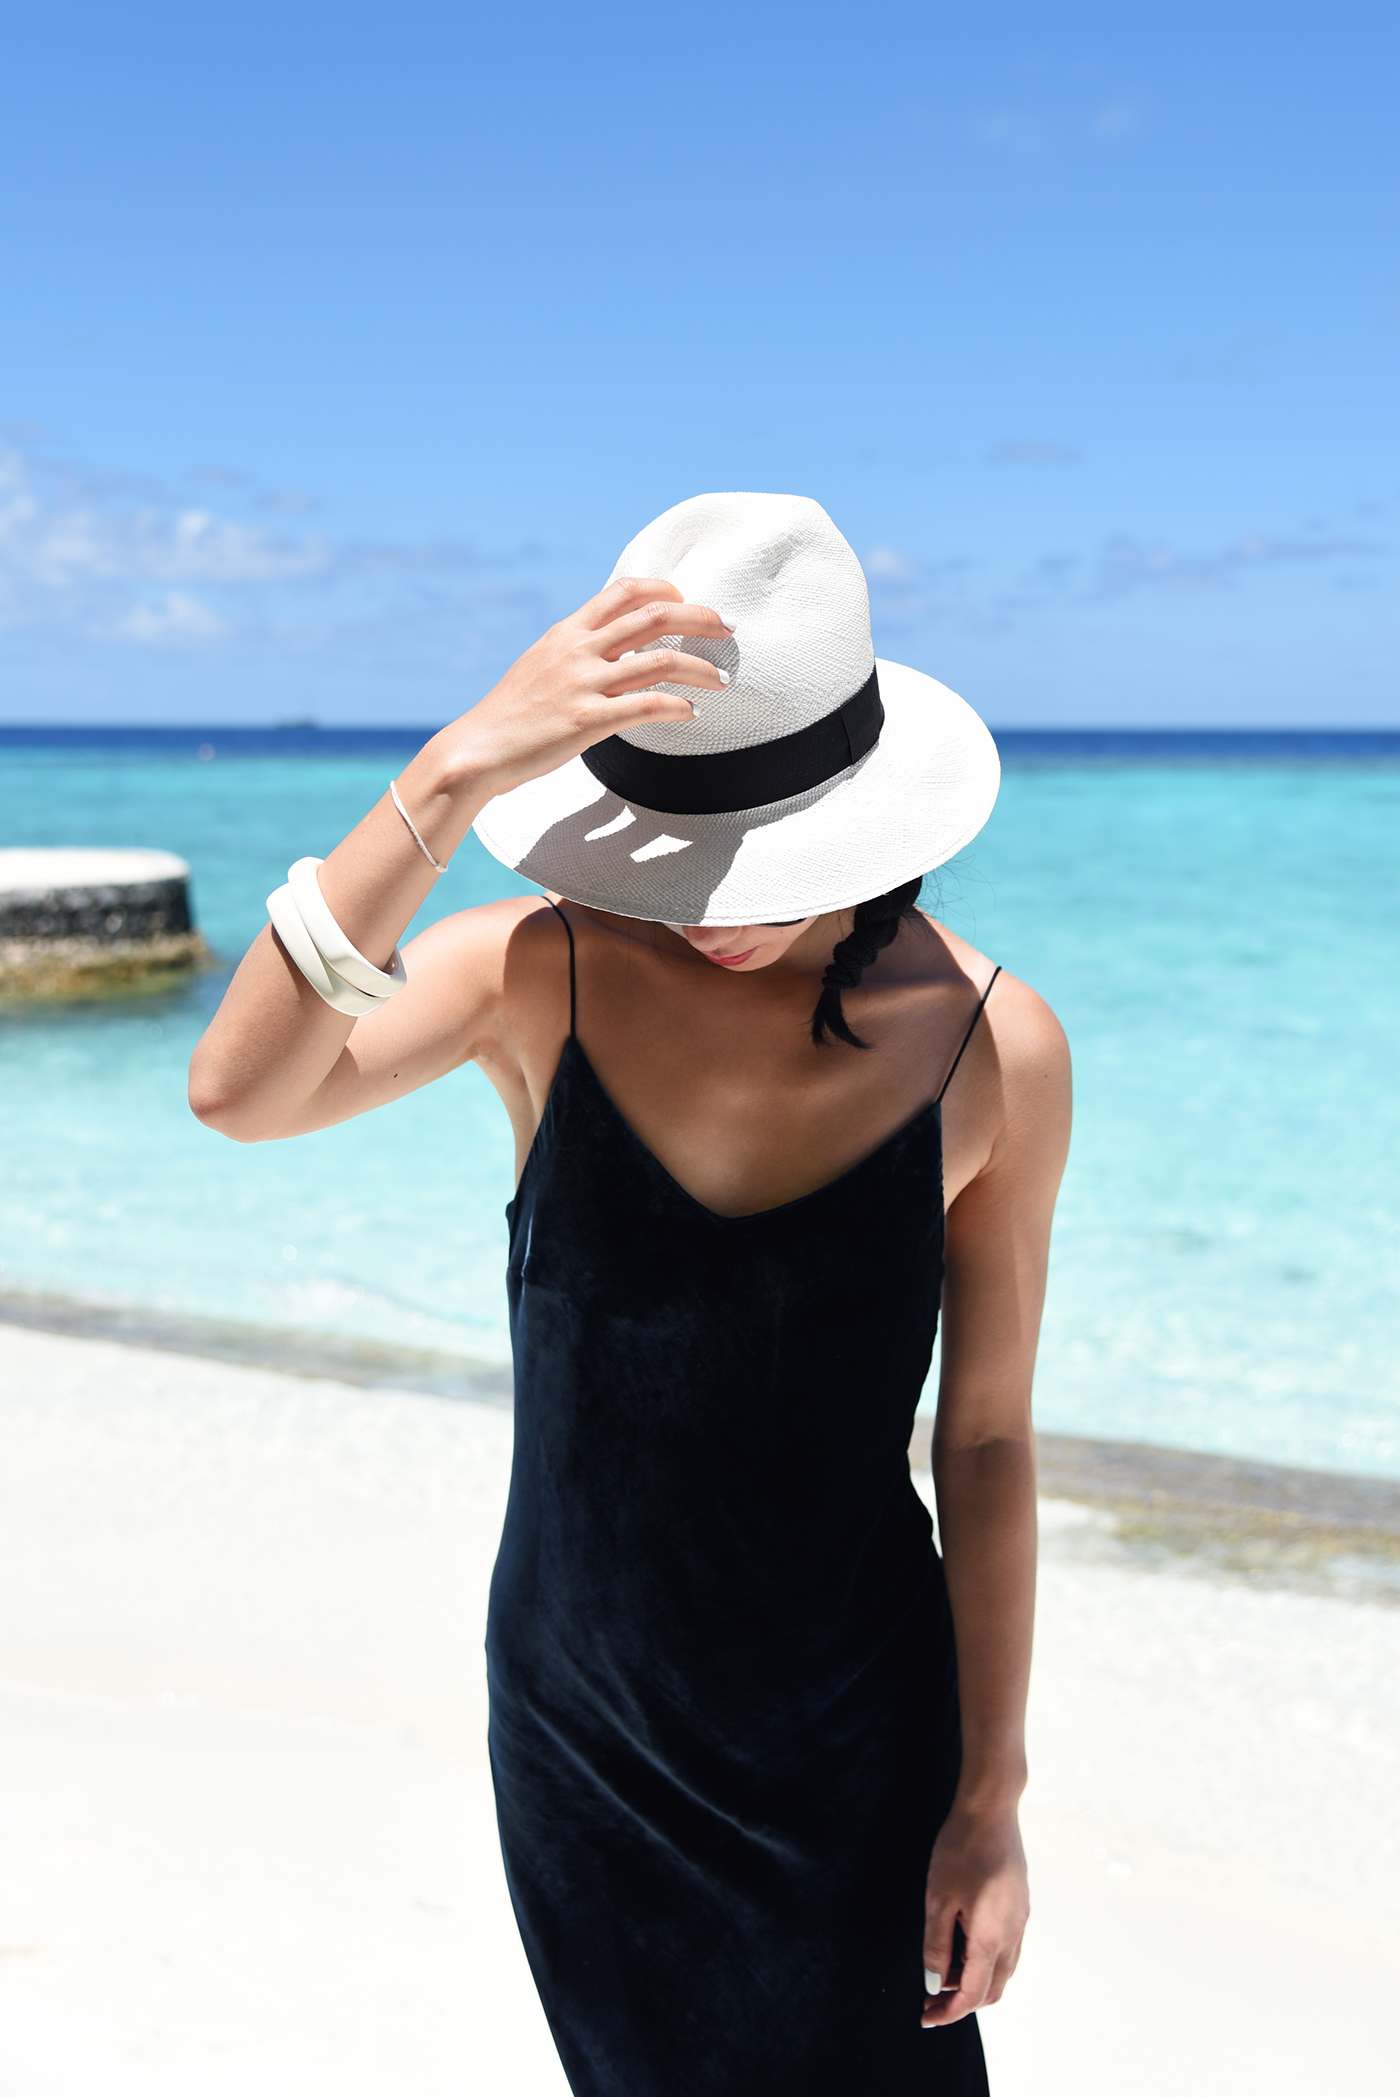 JCrew-Maldives-Cynthia-Lo-1